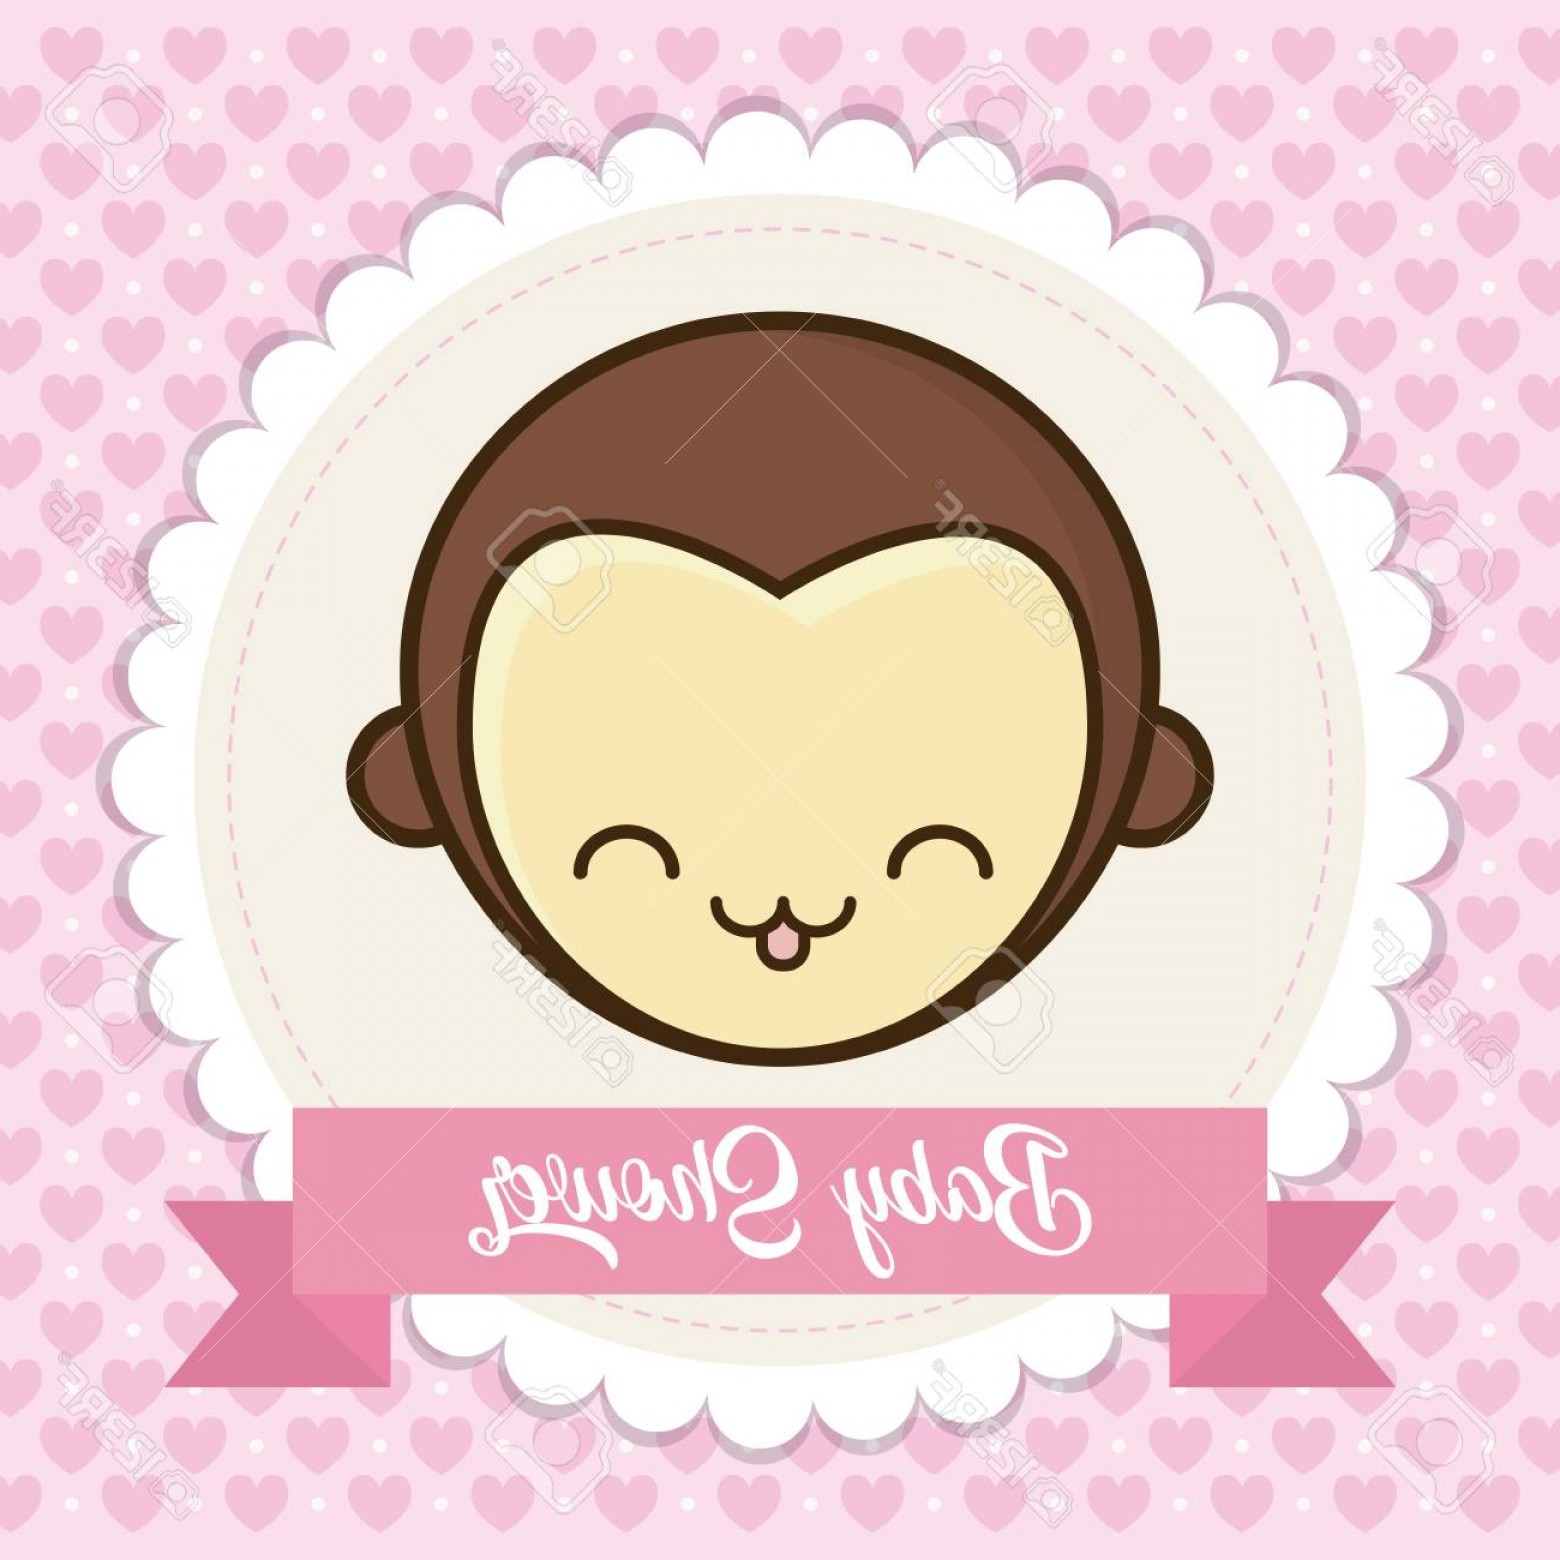 Sitting Monkey Vector Baby Shower: Photostock Vector Baby Shower Card With Cute Monkey Icon Over Pink Background Colorful Design Vector Illustration